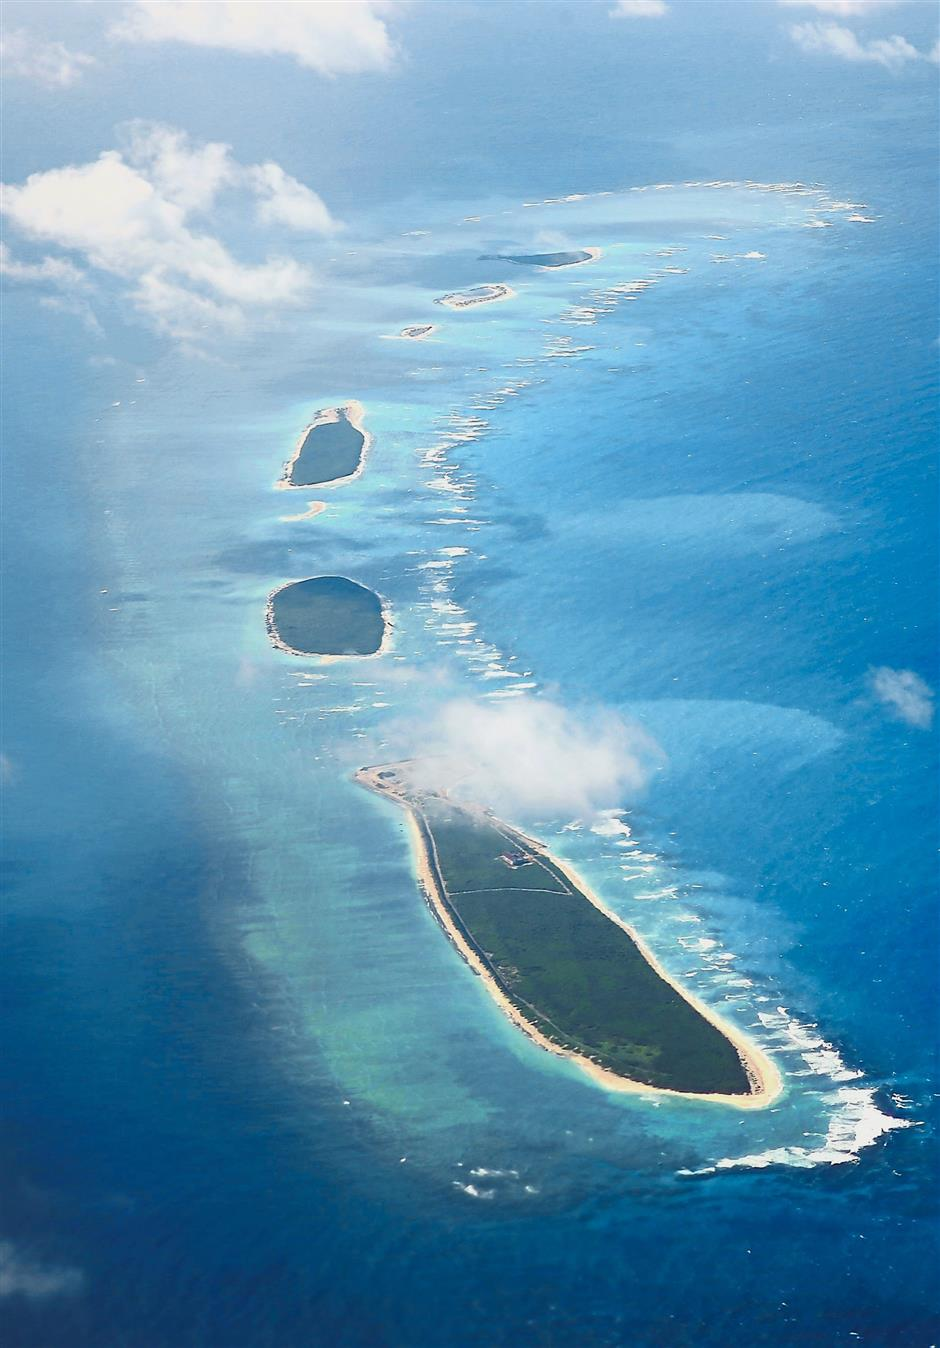 Maritime dispute: An aerial view of Qilianyu islands in the Paracel chain, which China considers part of Hainan province. — AFP